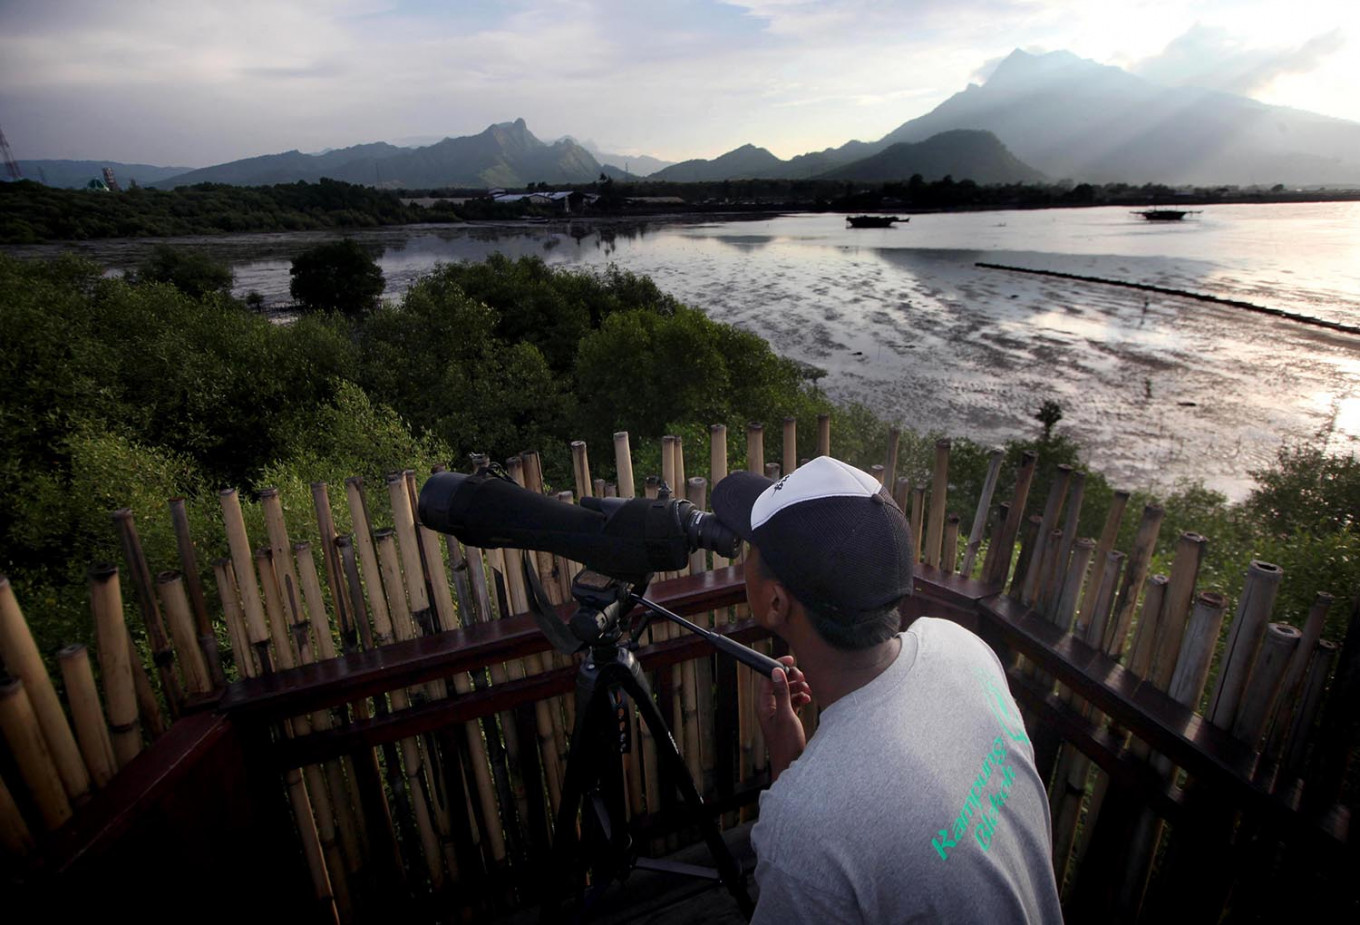 Into the wild: A visitor observes the habitat of herons against the background of Mount Putri. JP/Boy T Harjanto